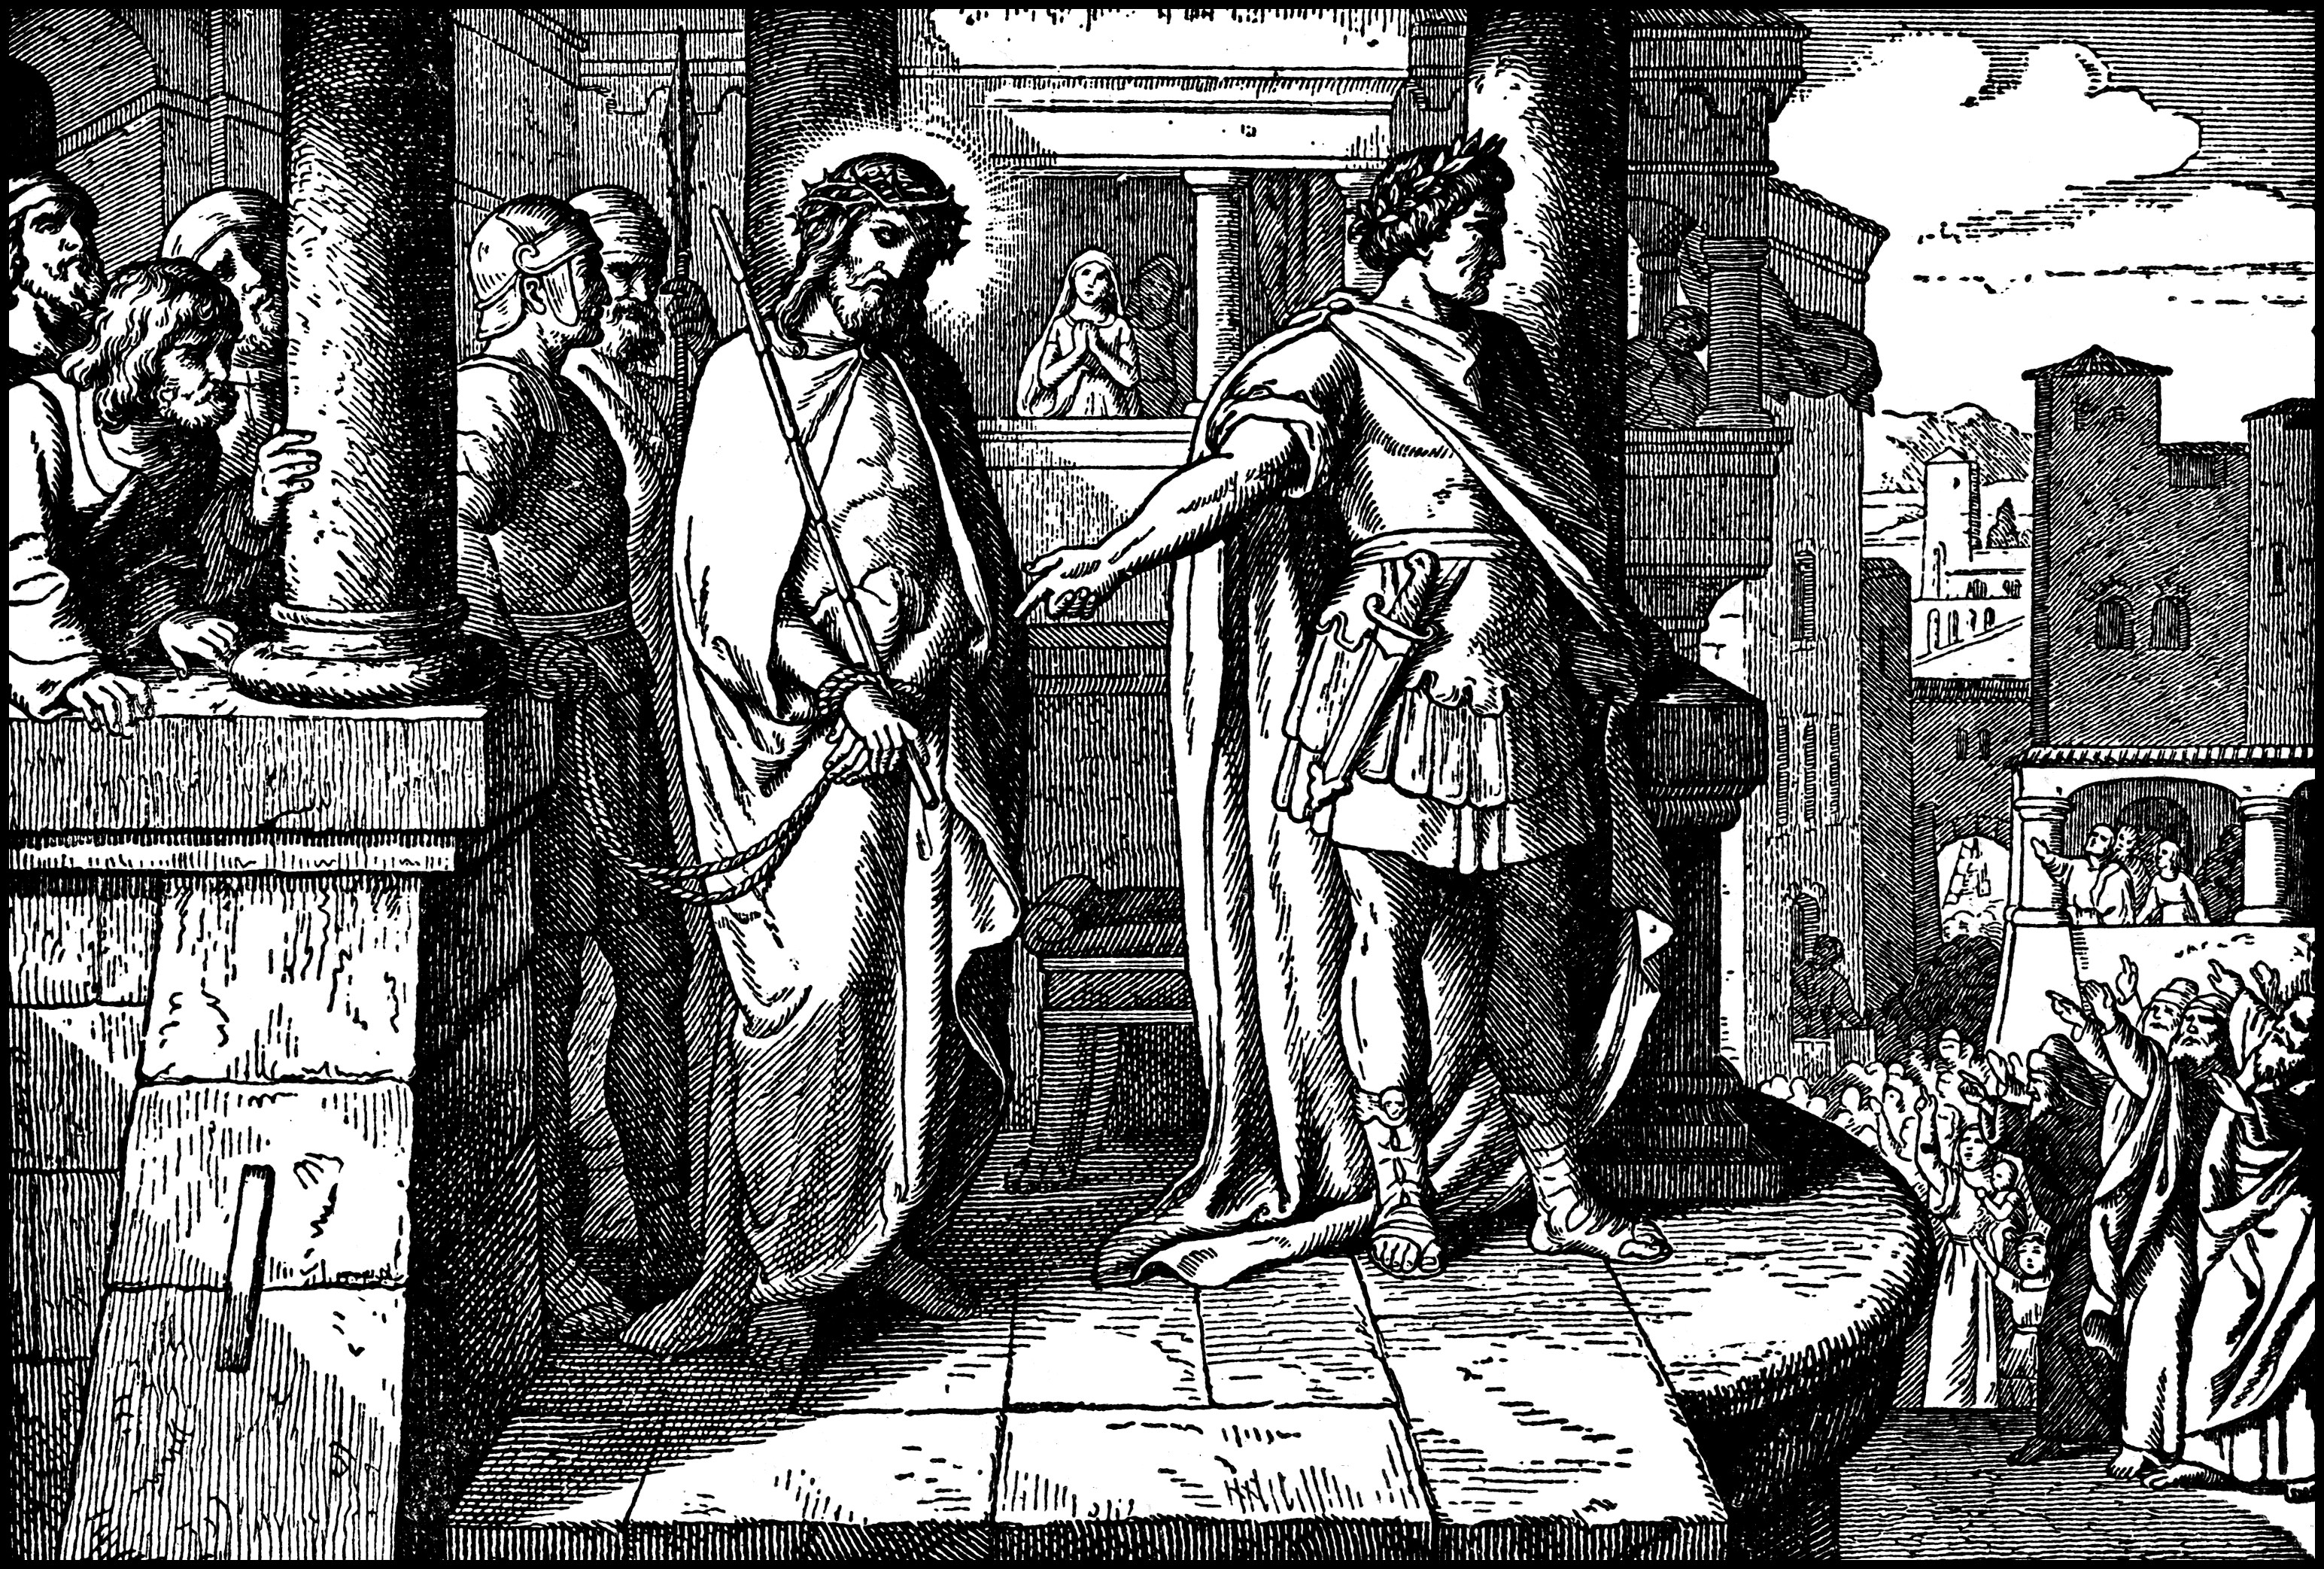 Pilate Brings Jesus Before The People And They Ask For His